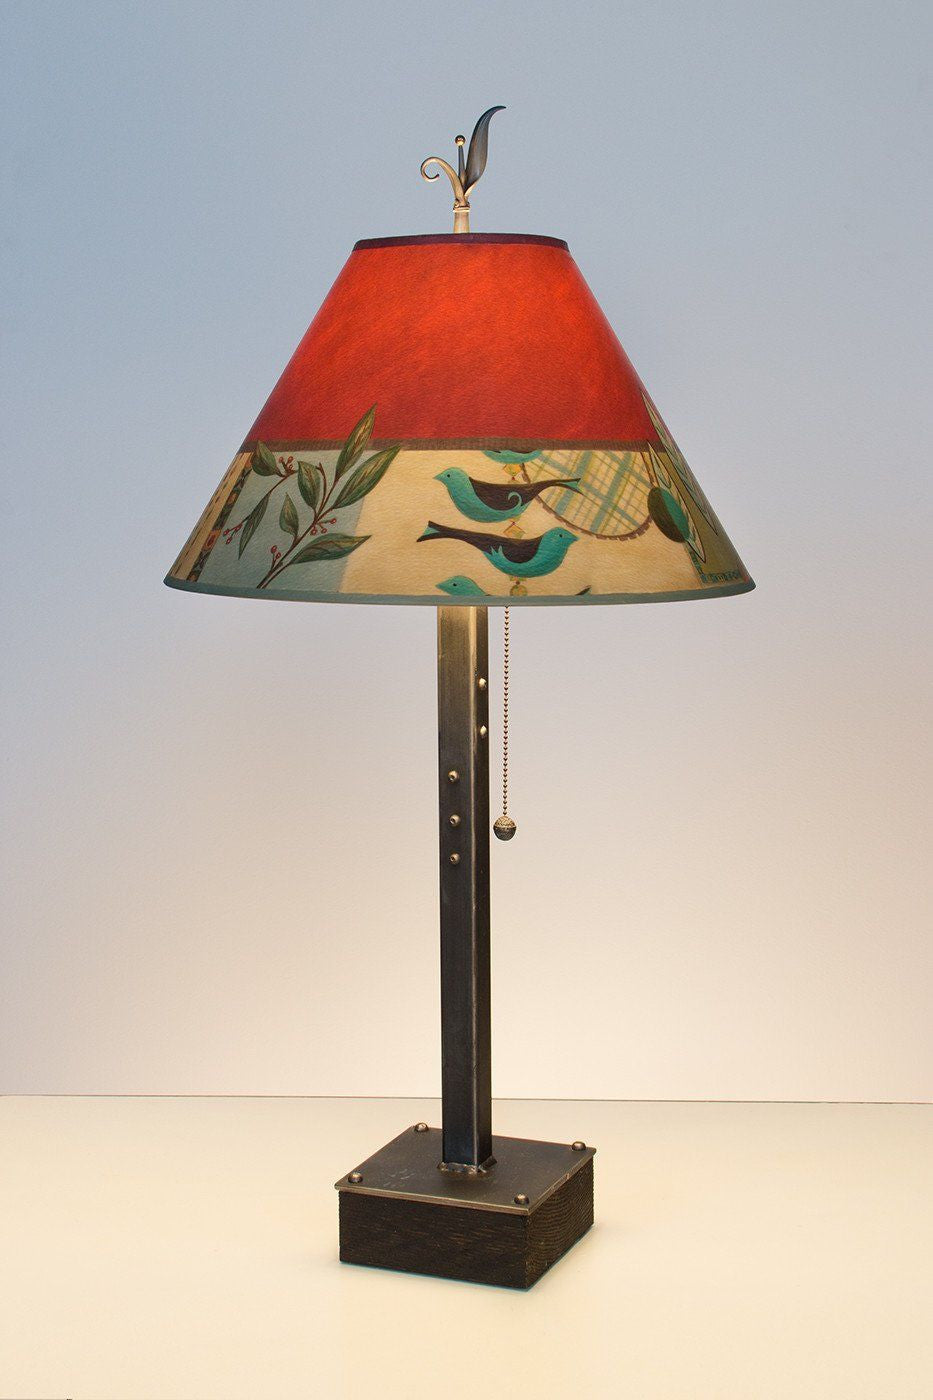 Steel Table Lamp on Wood with Medium Conical Shade in New Capri